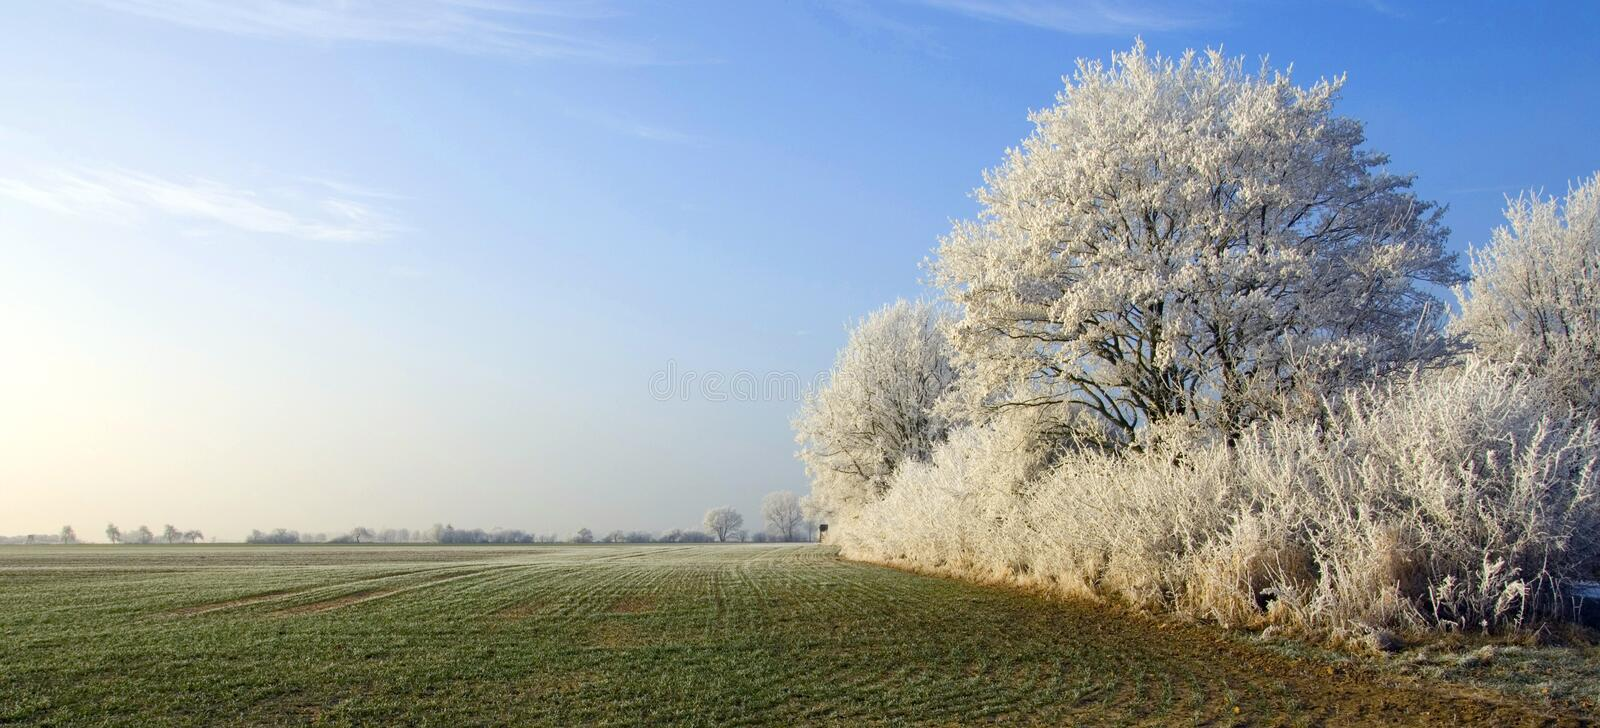 Hoar winter landscape. On a very cold day with clear blue sky as background royalty free stock image